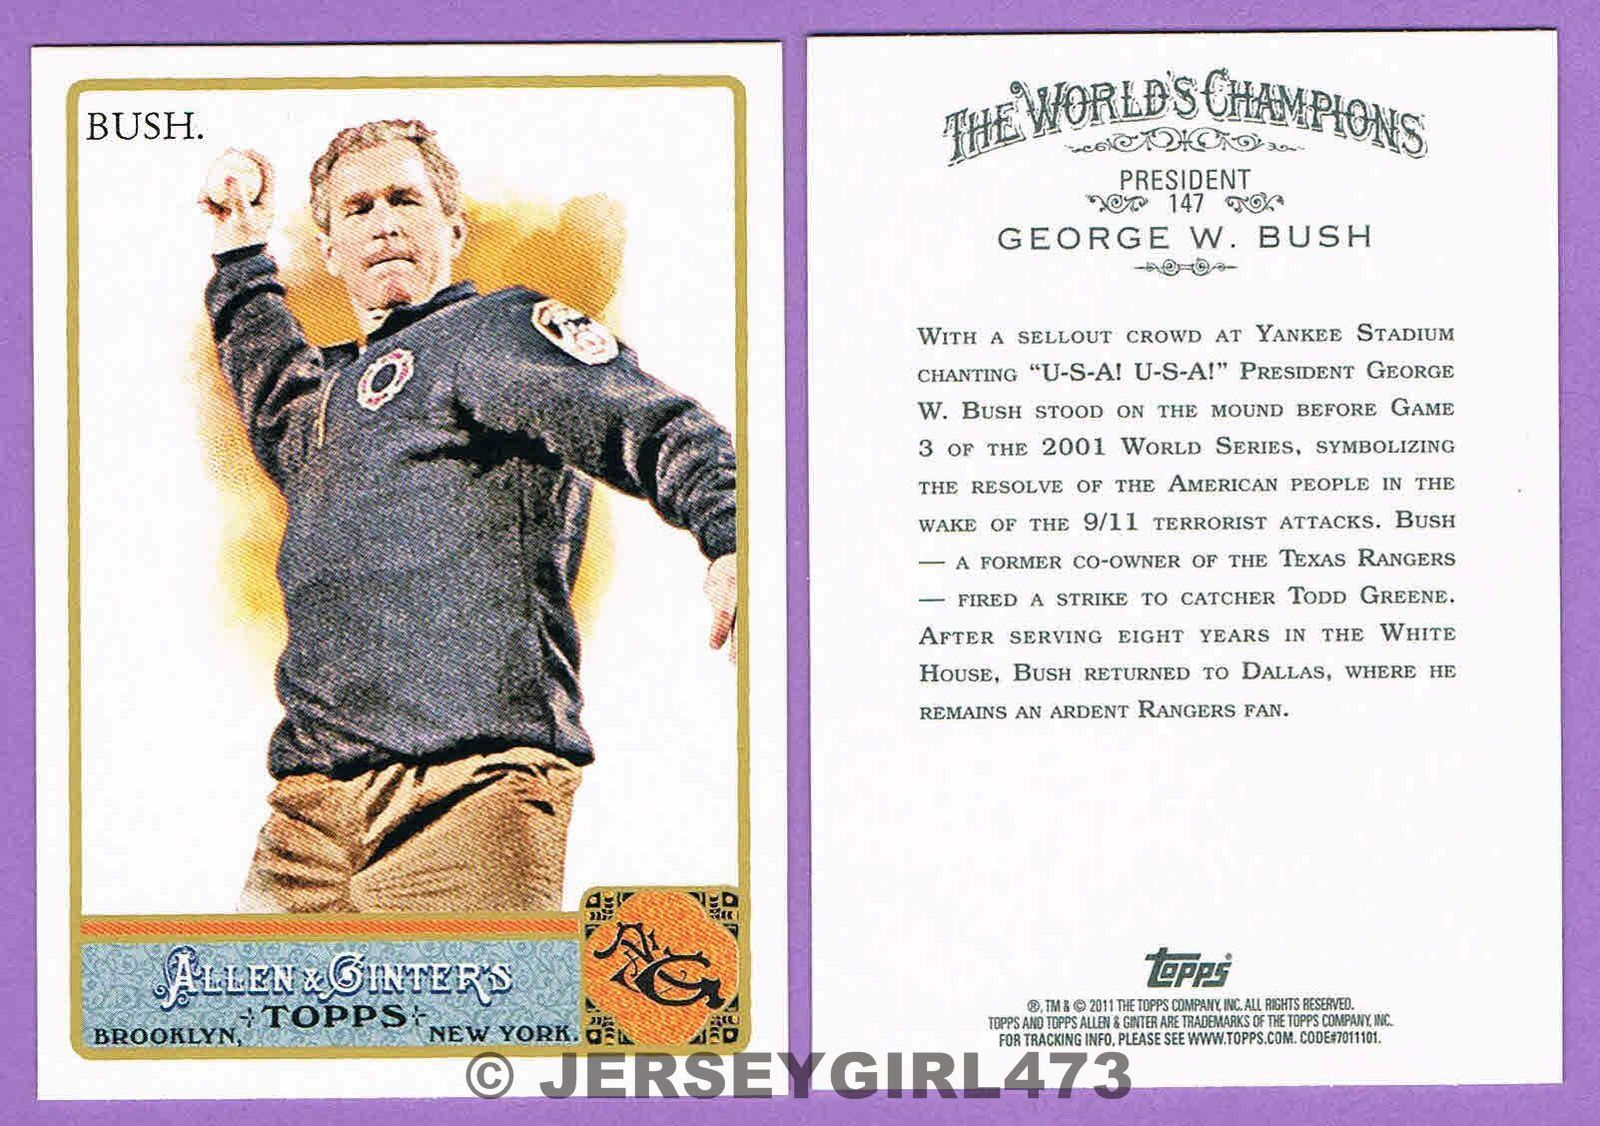 President George W. Bush 2011 Topps Allen & Ginter's Card #147